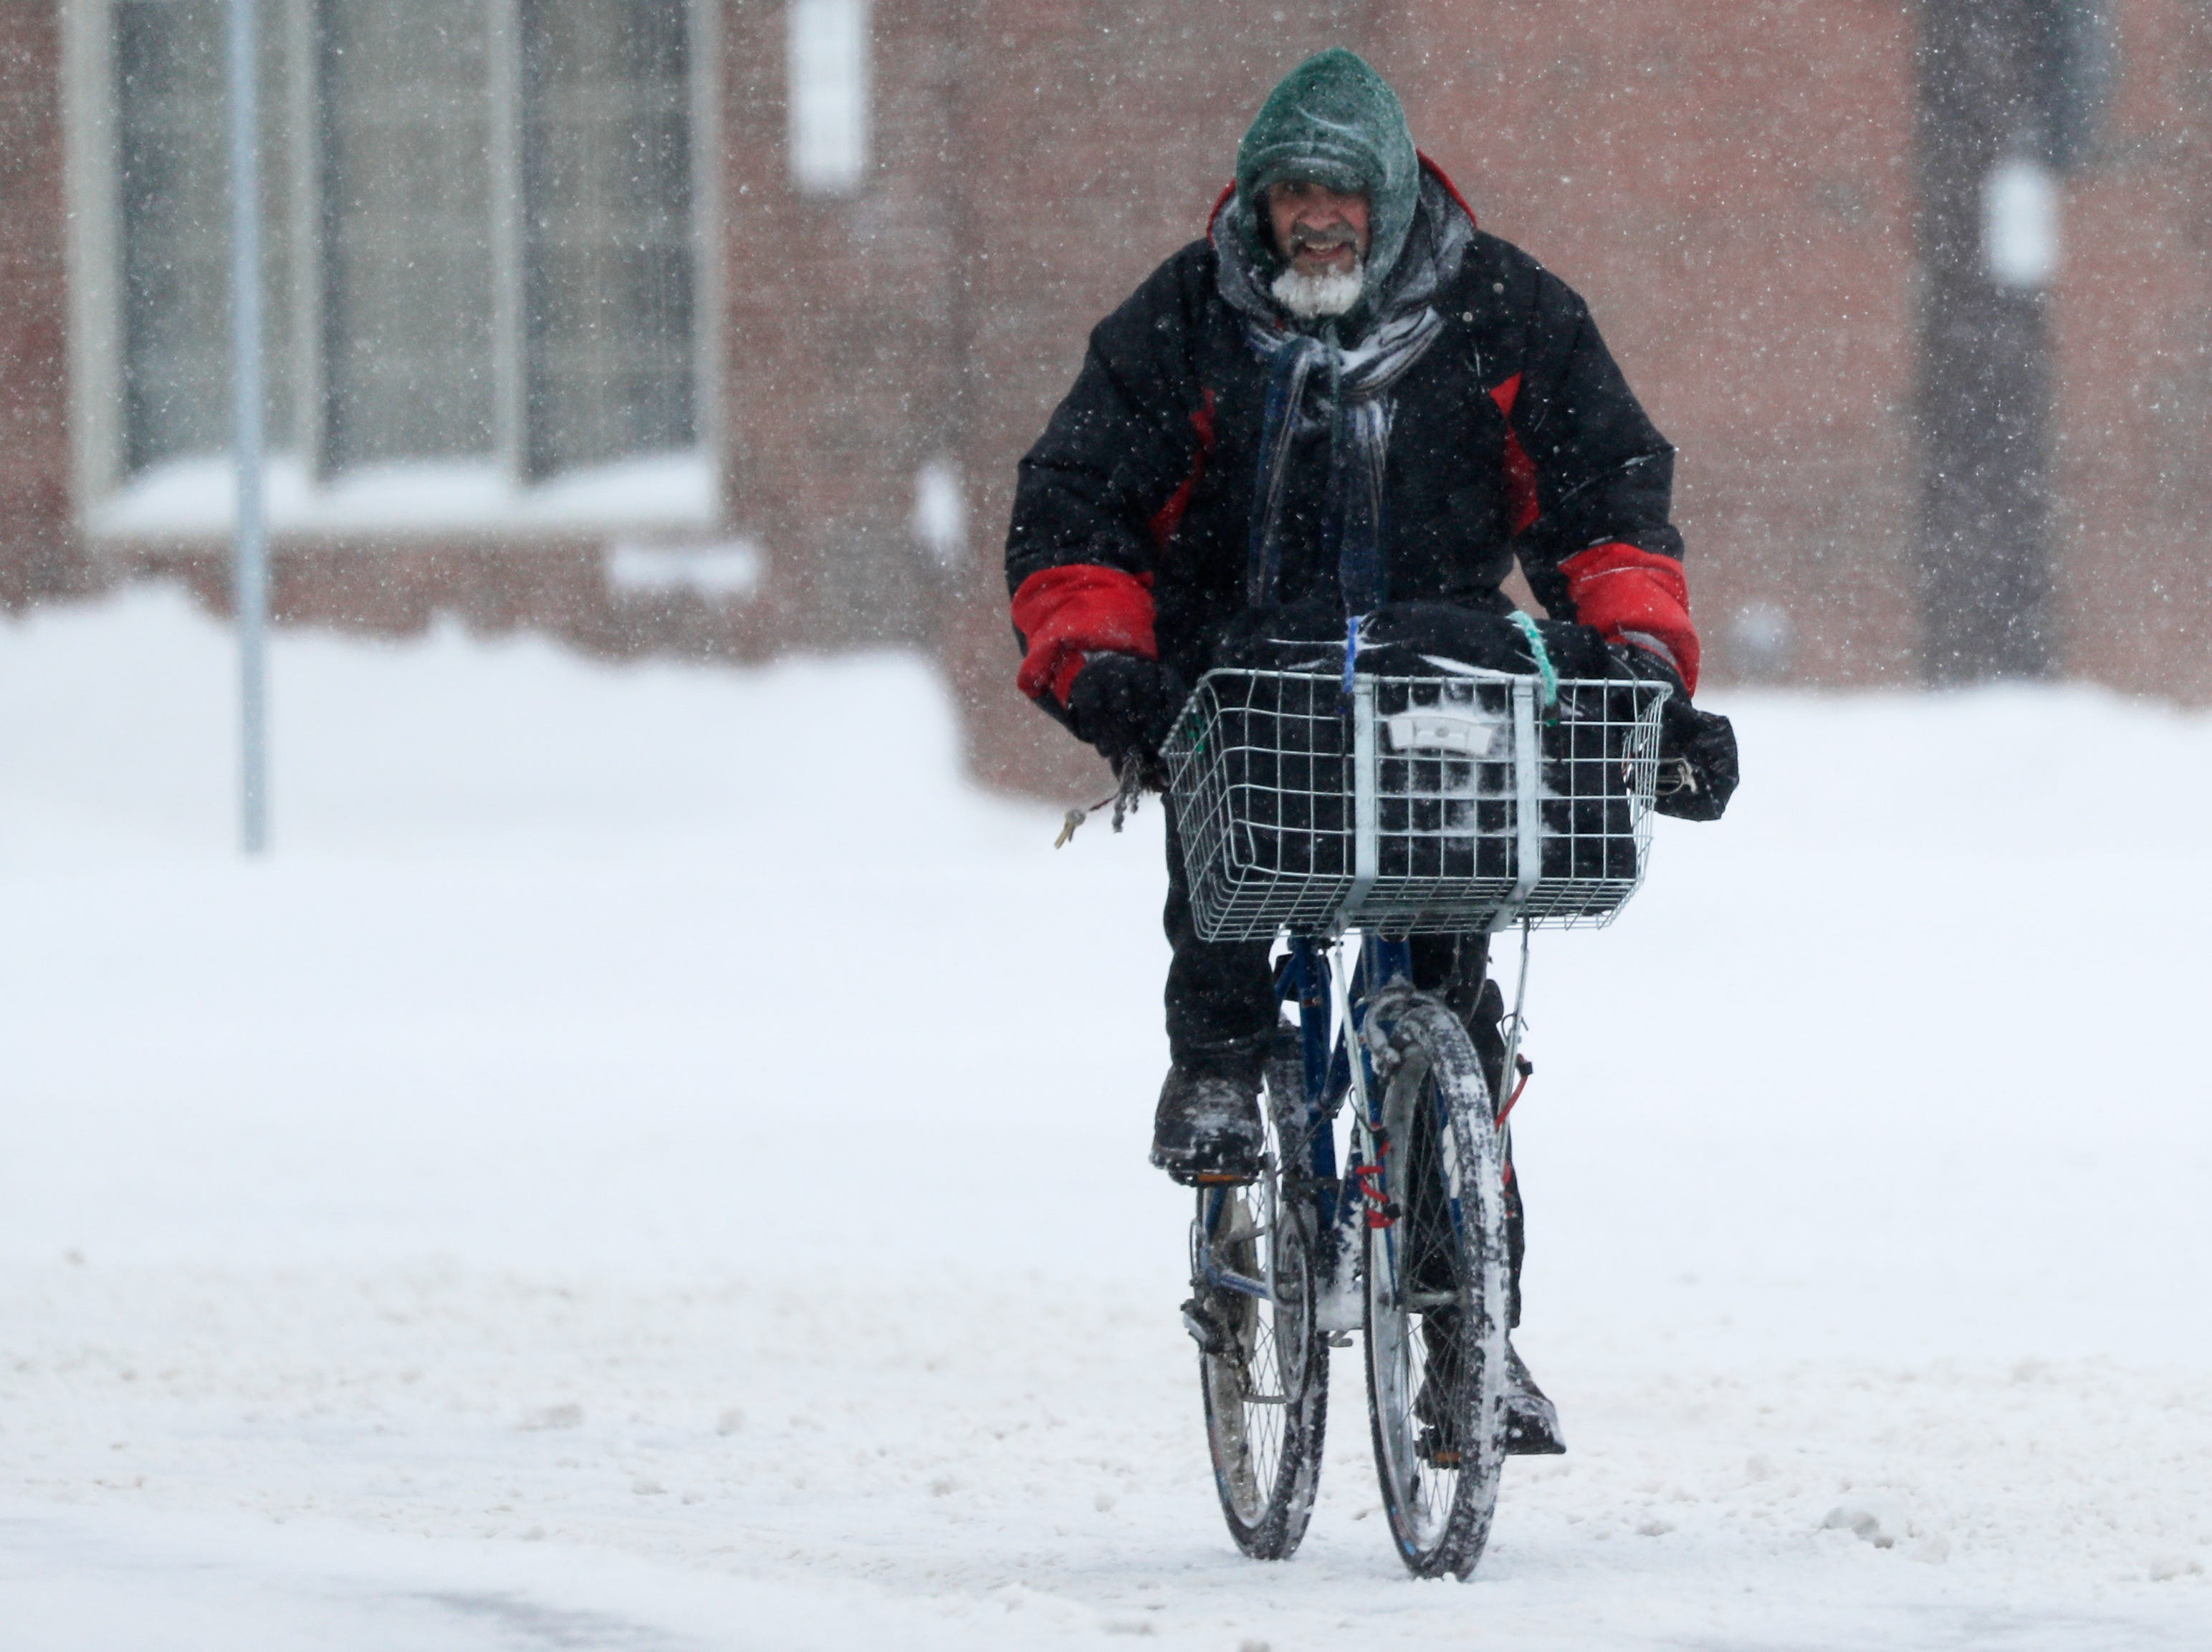 A cyclist rides along University Ave during a snowstorm on Tuesday, February 12, 2019 in Green Bay, Wis.